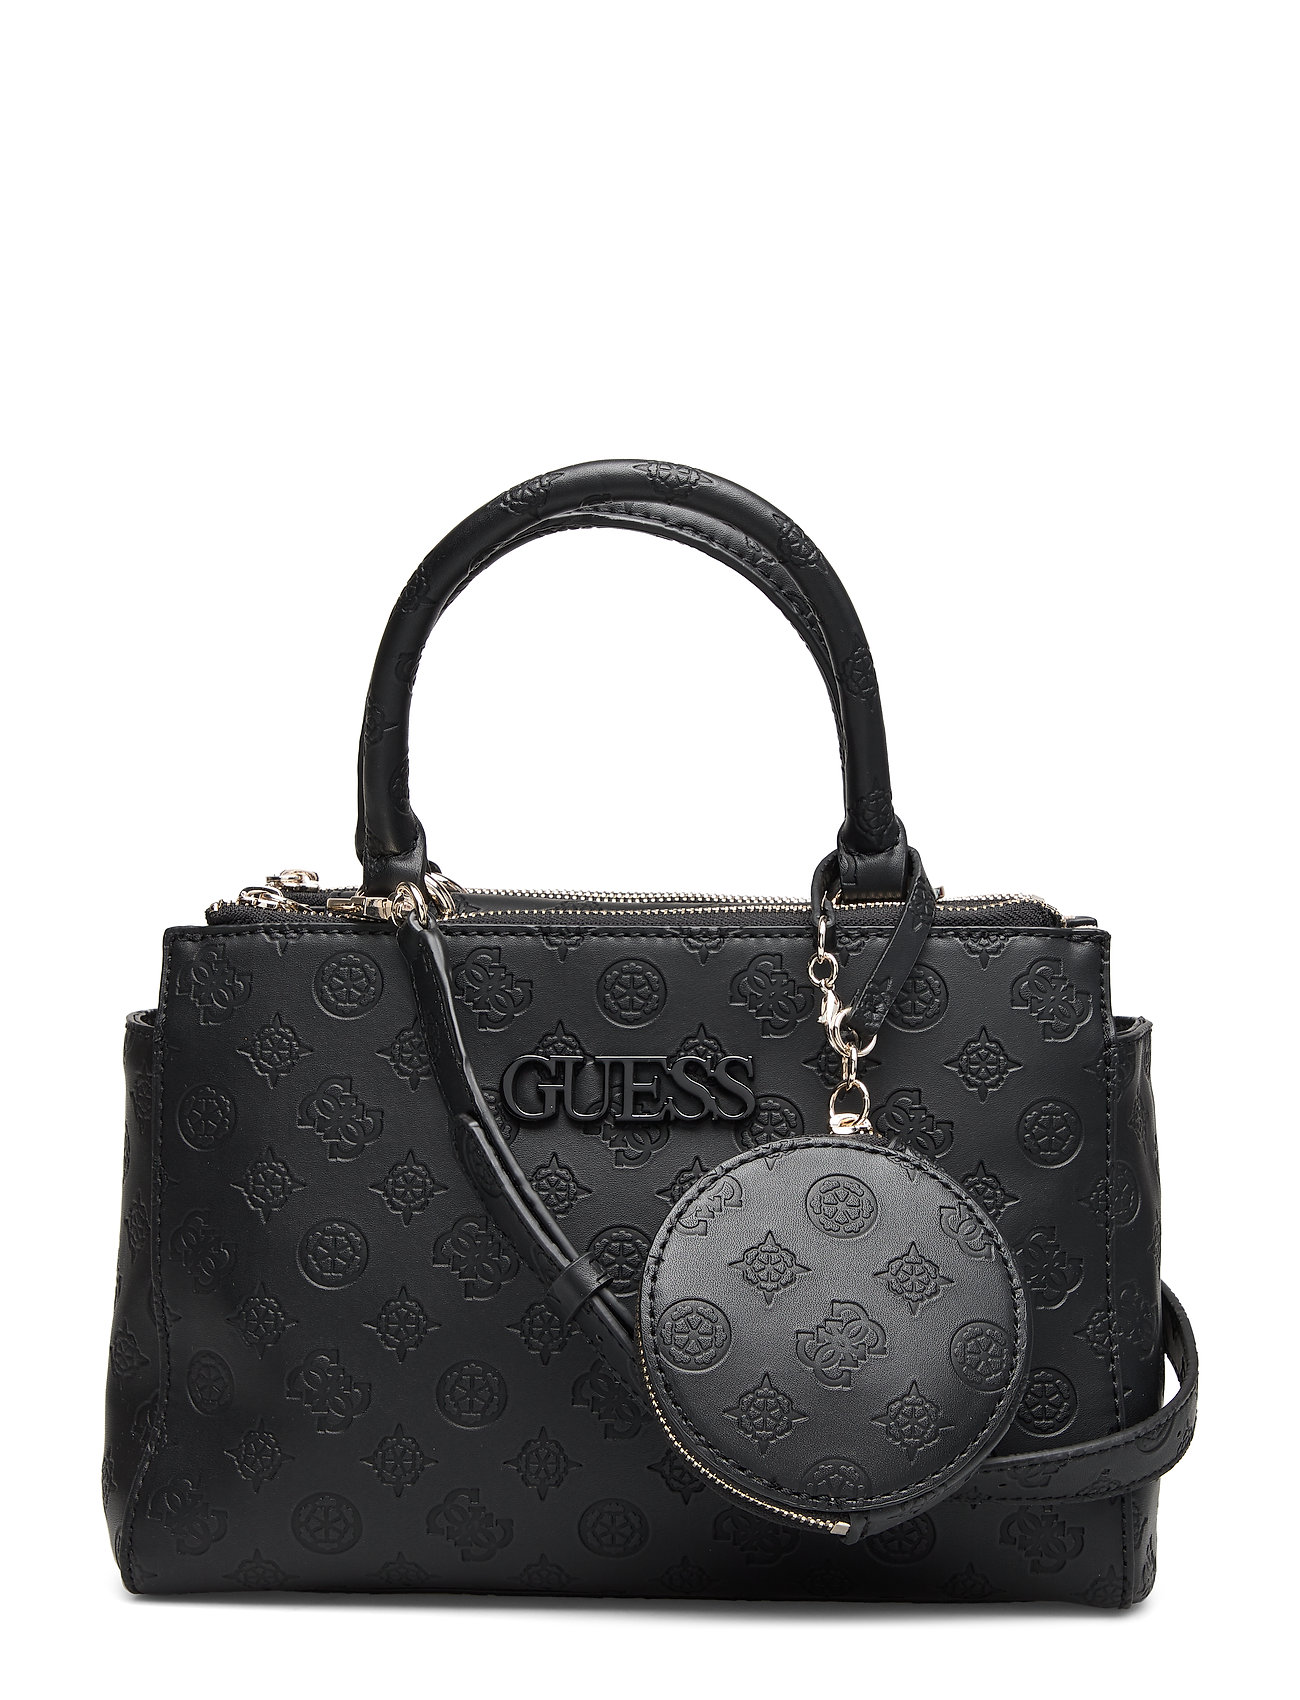 GUESS Janelle Small Status Satchel Bags Top Handle Bags Schwarz GUESS